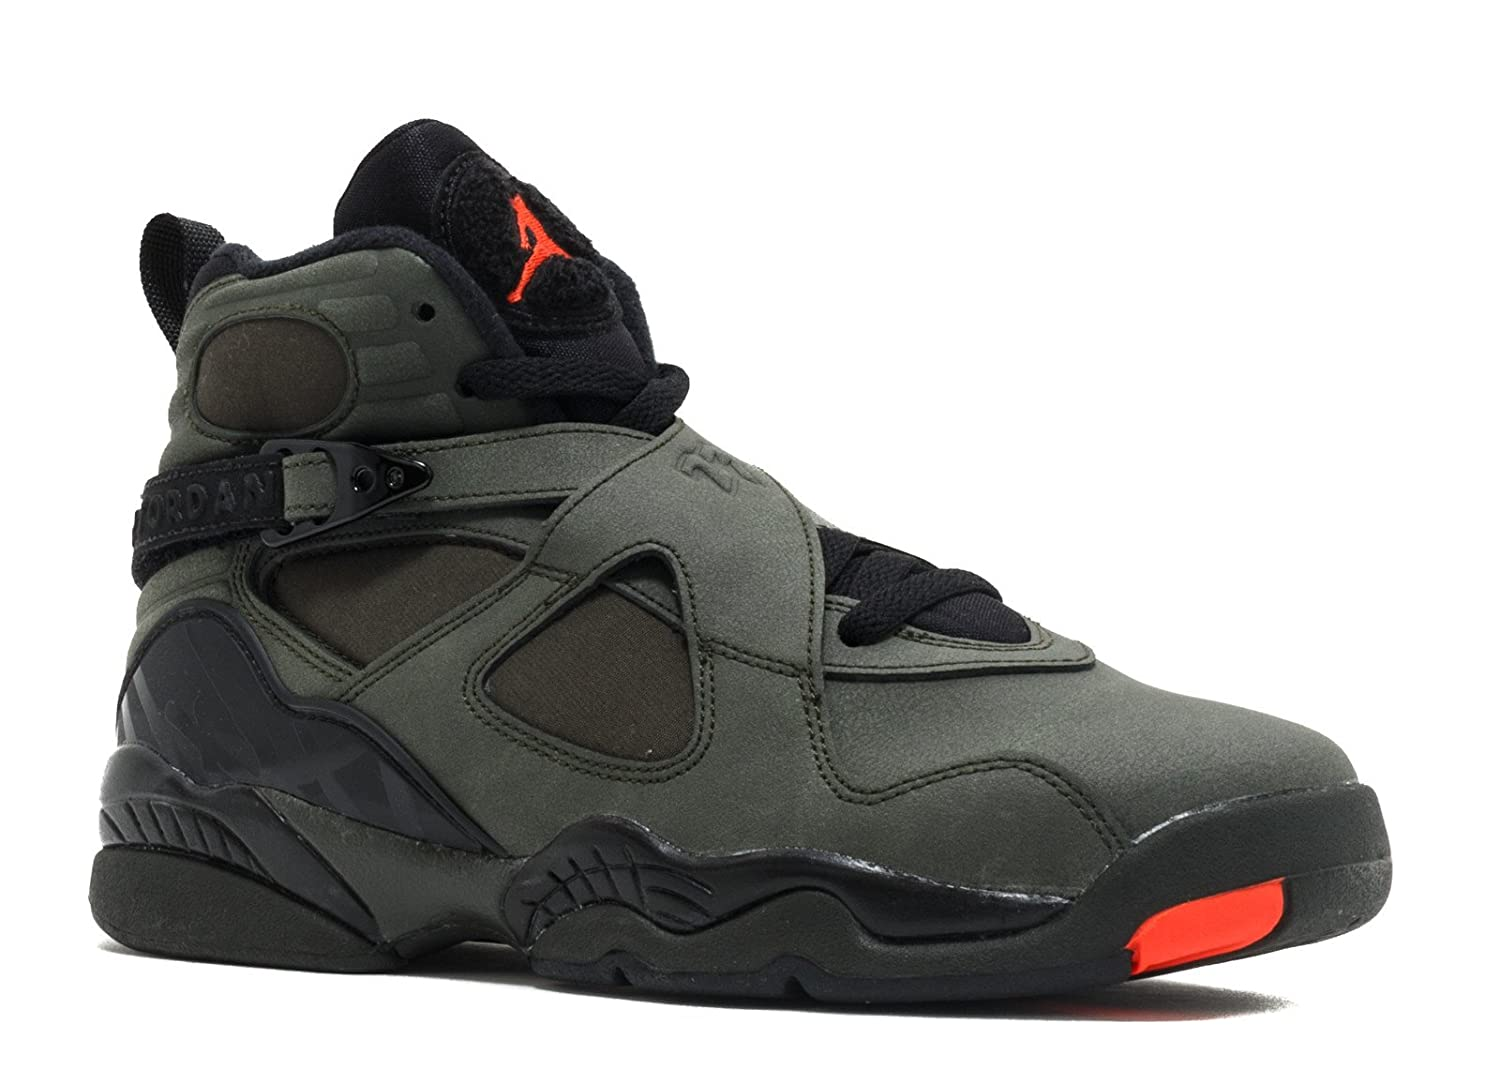 AIR JORDAN - エアジョーダン - AIR JORDAN 8 RETRO BG 'TAKE FLIGHT' - 305368-305 - SIZE 6.5 (子供、ユニセックス)